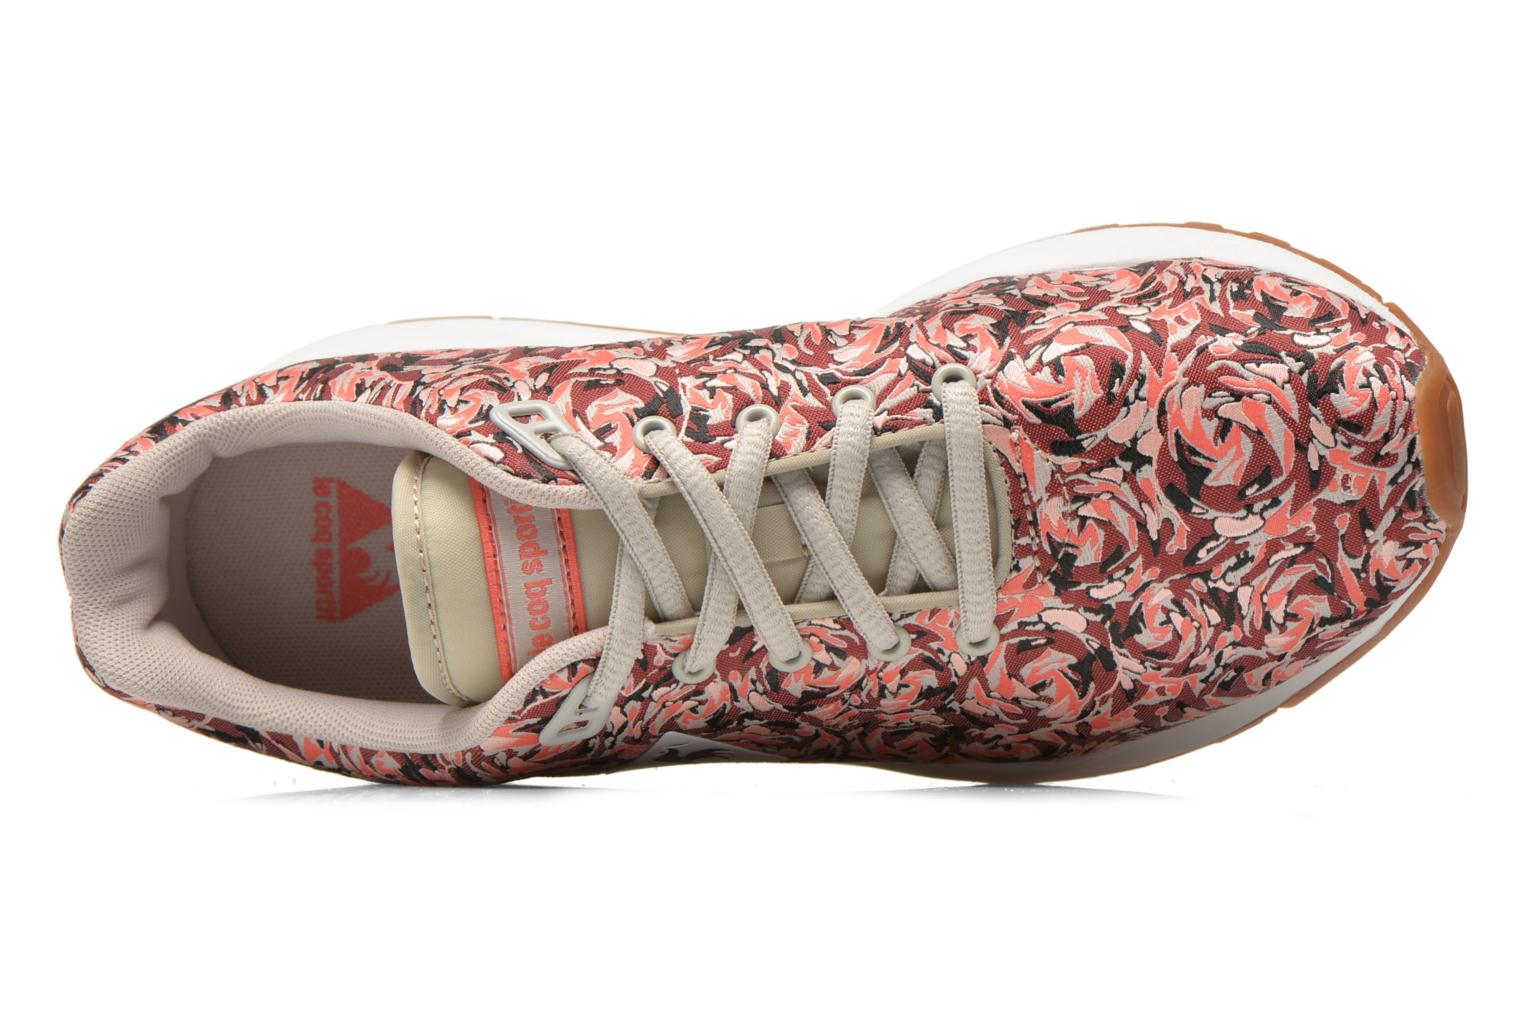 LCS R950 W Flower Jacquard Ruby Wine/Gray Morn